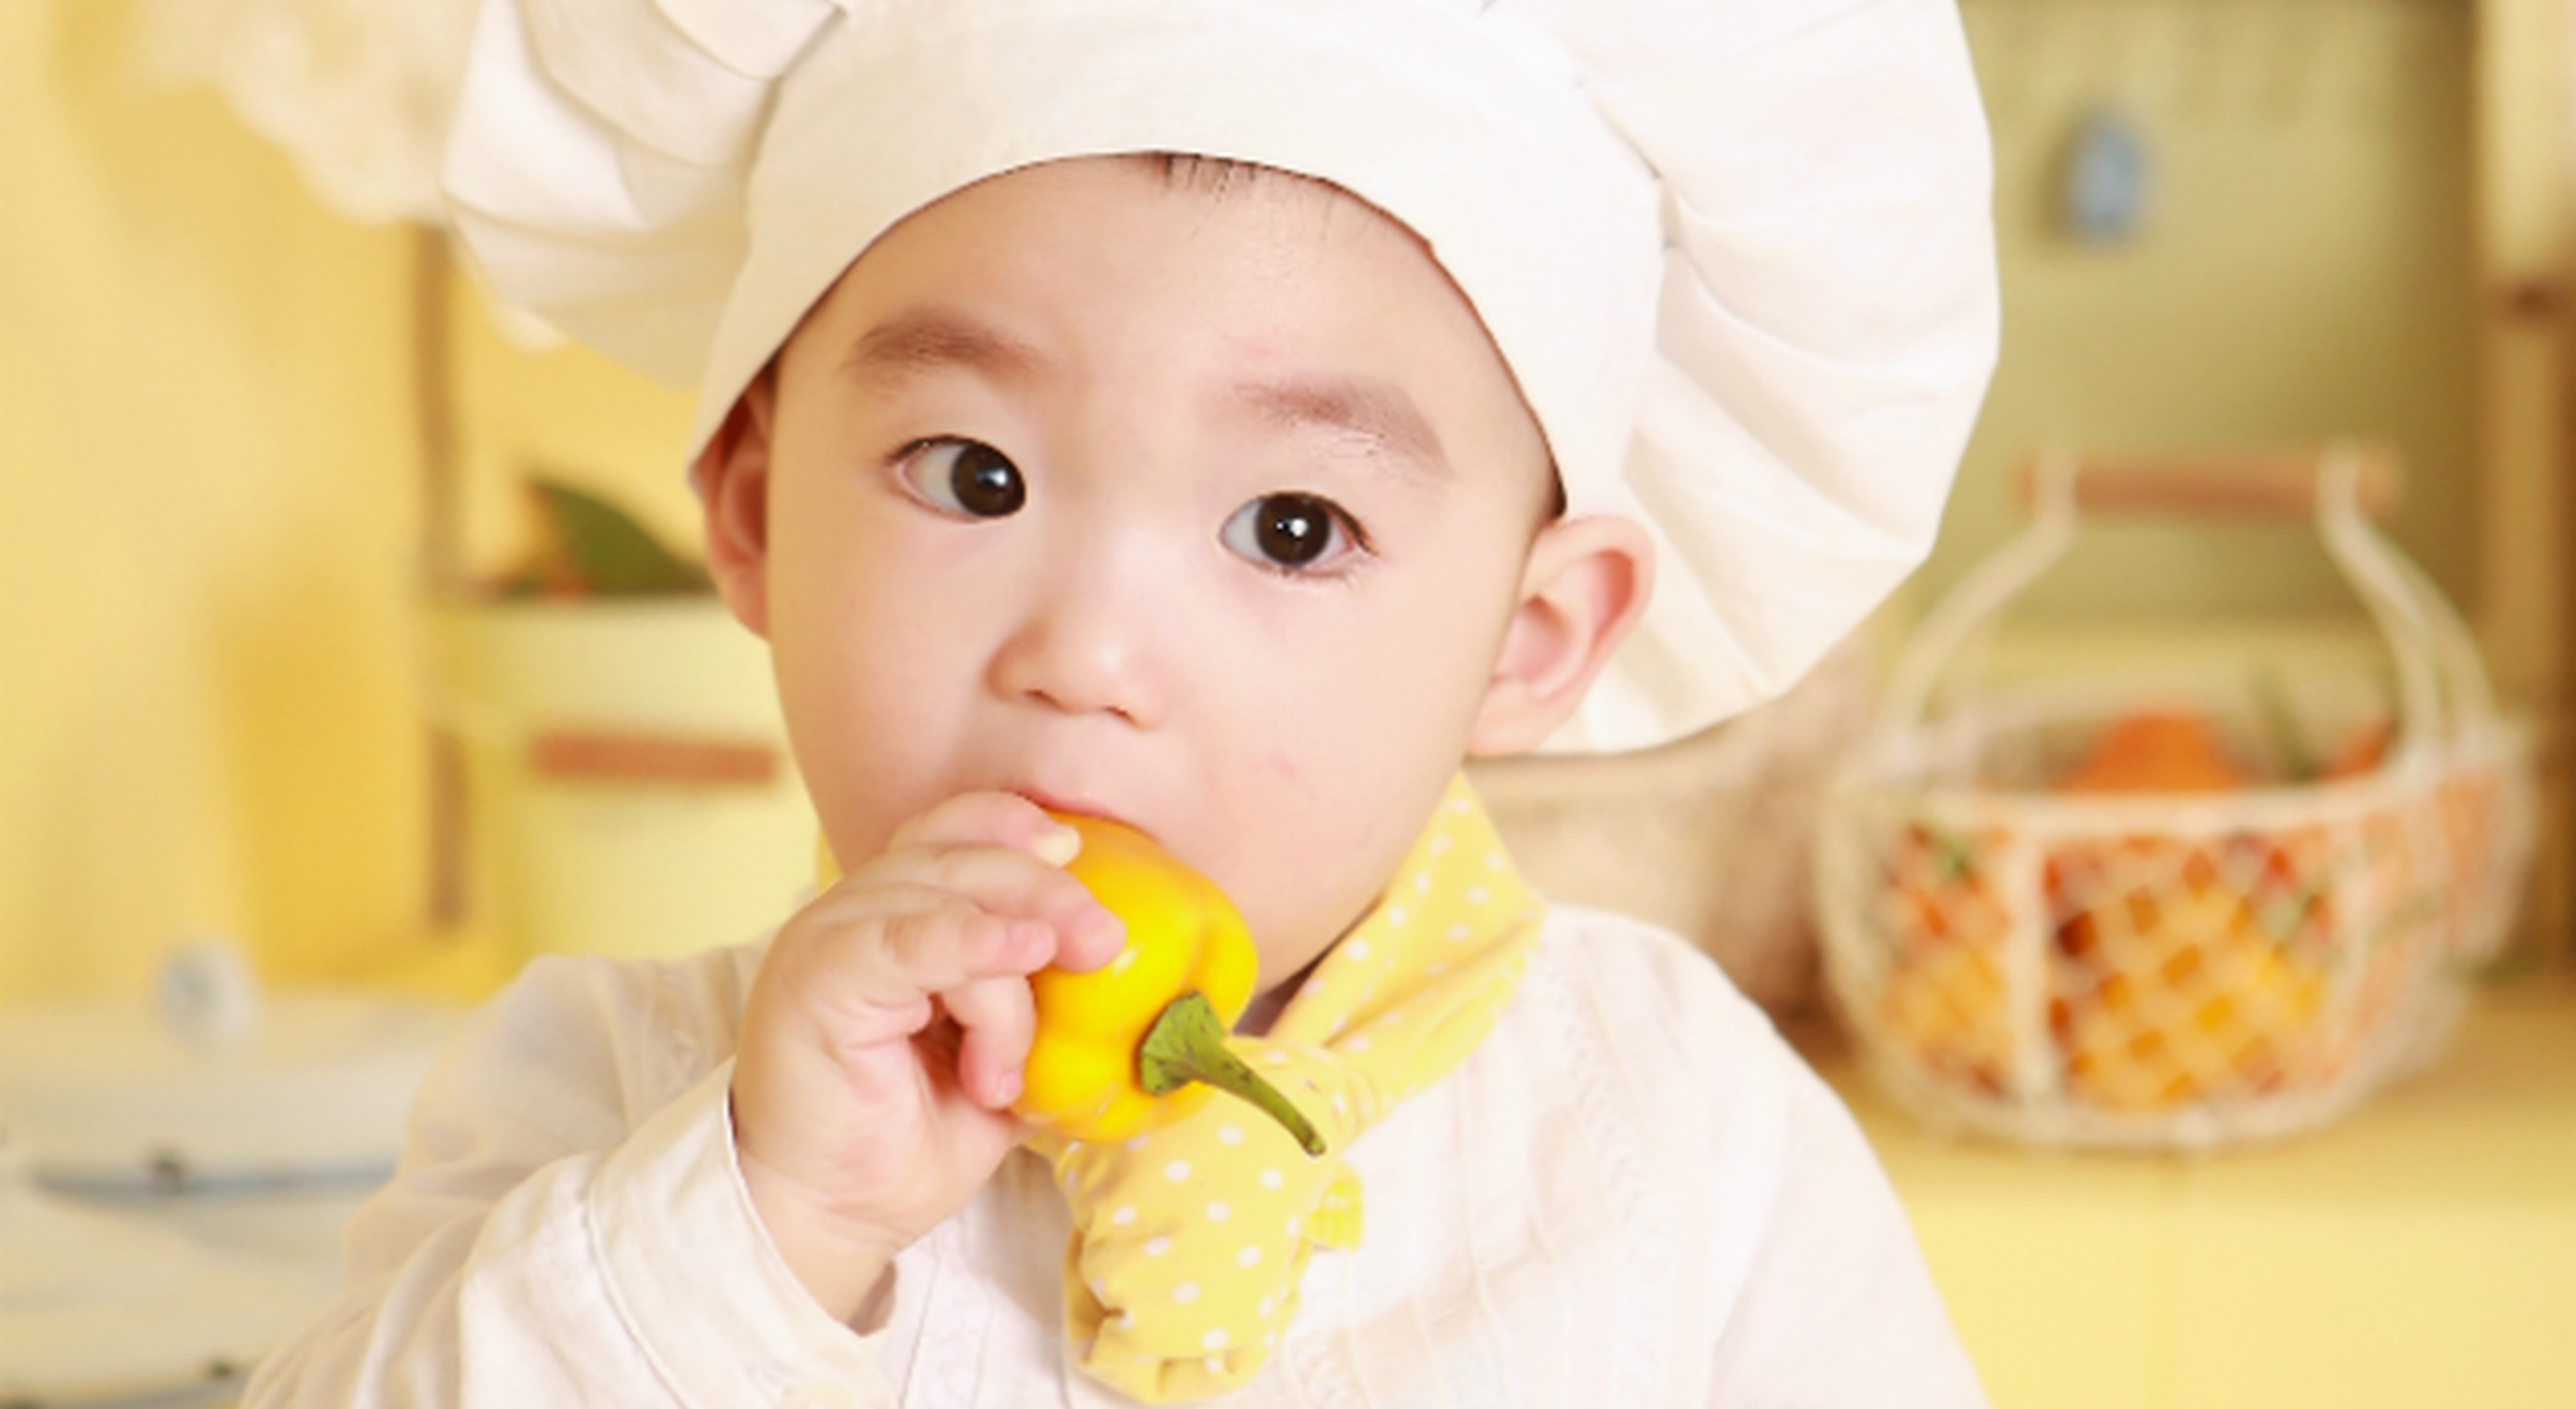 Little boy in chef hat eating yellow pepper